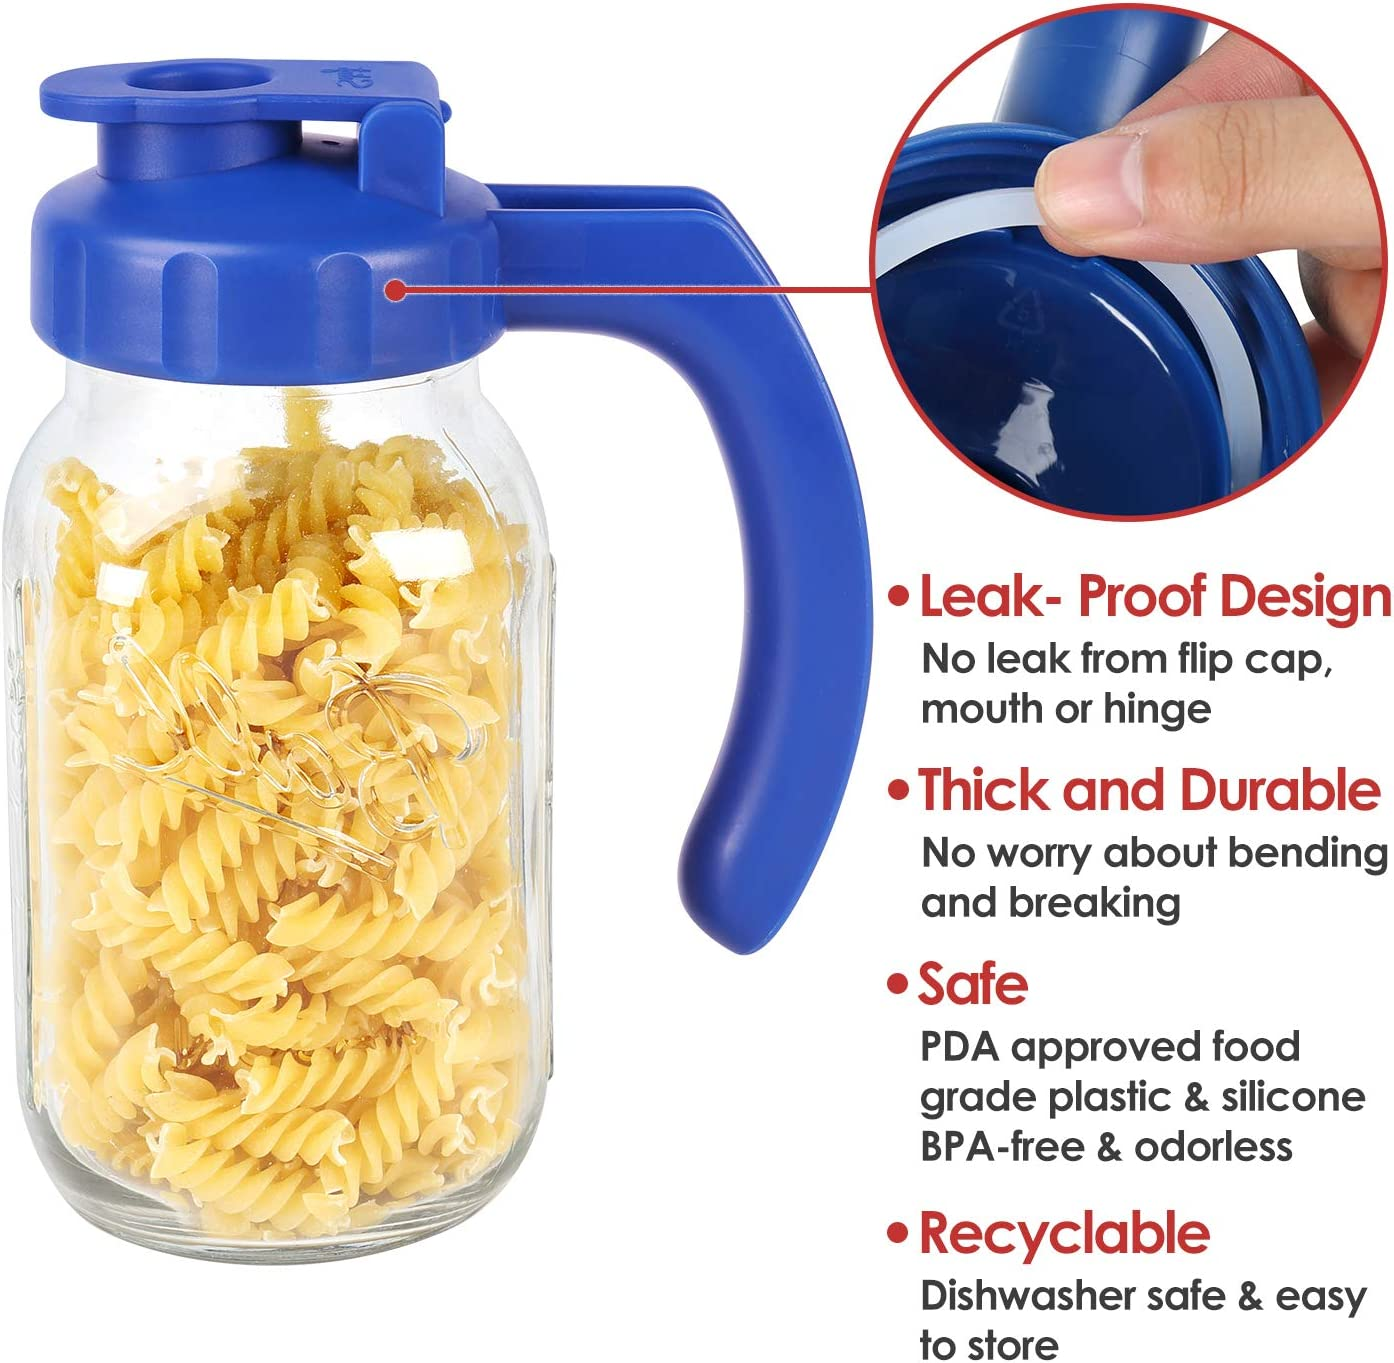 JARS NOT INCLUDED 2 Pack Regular Mouth Mason Jar Lids with Handle Airtight /&Leak-proof Seal Turns your Mason Jar into Pitcher Easy Pouring Spout